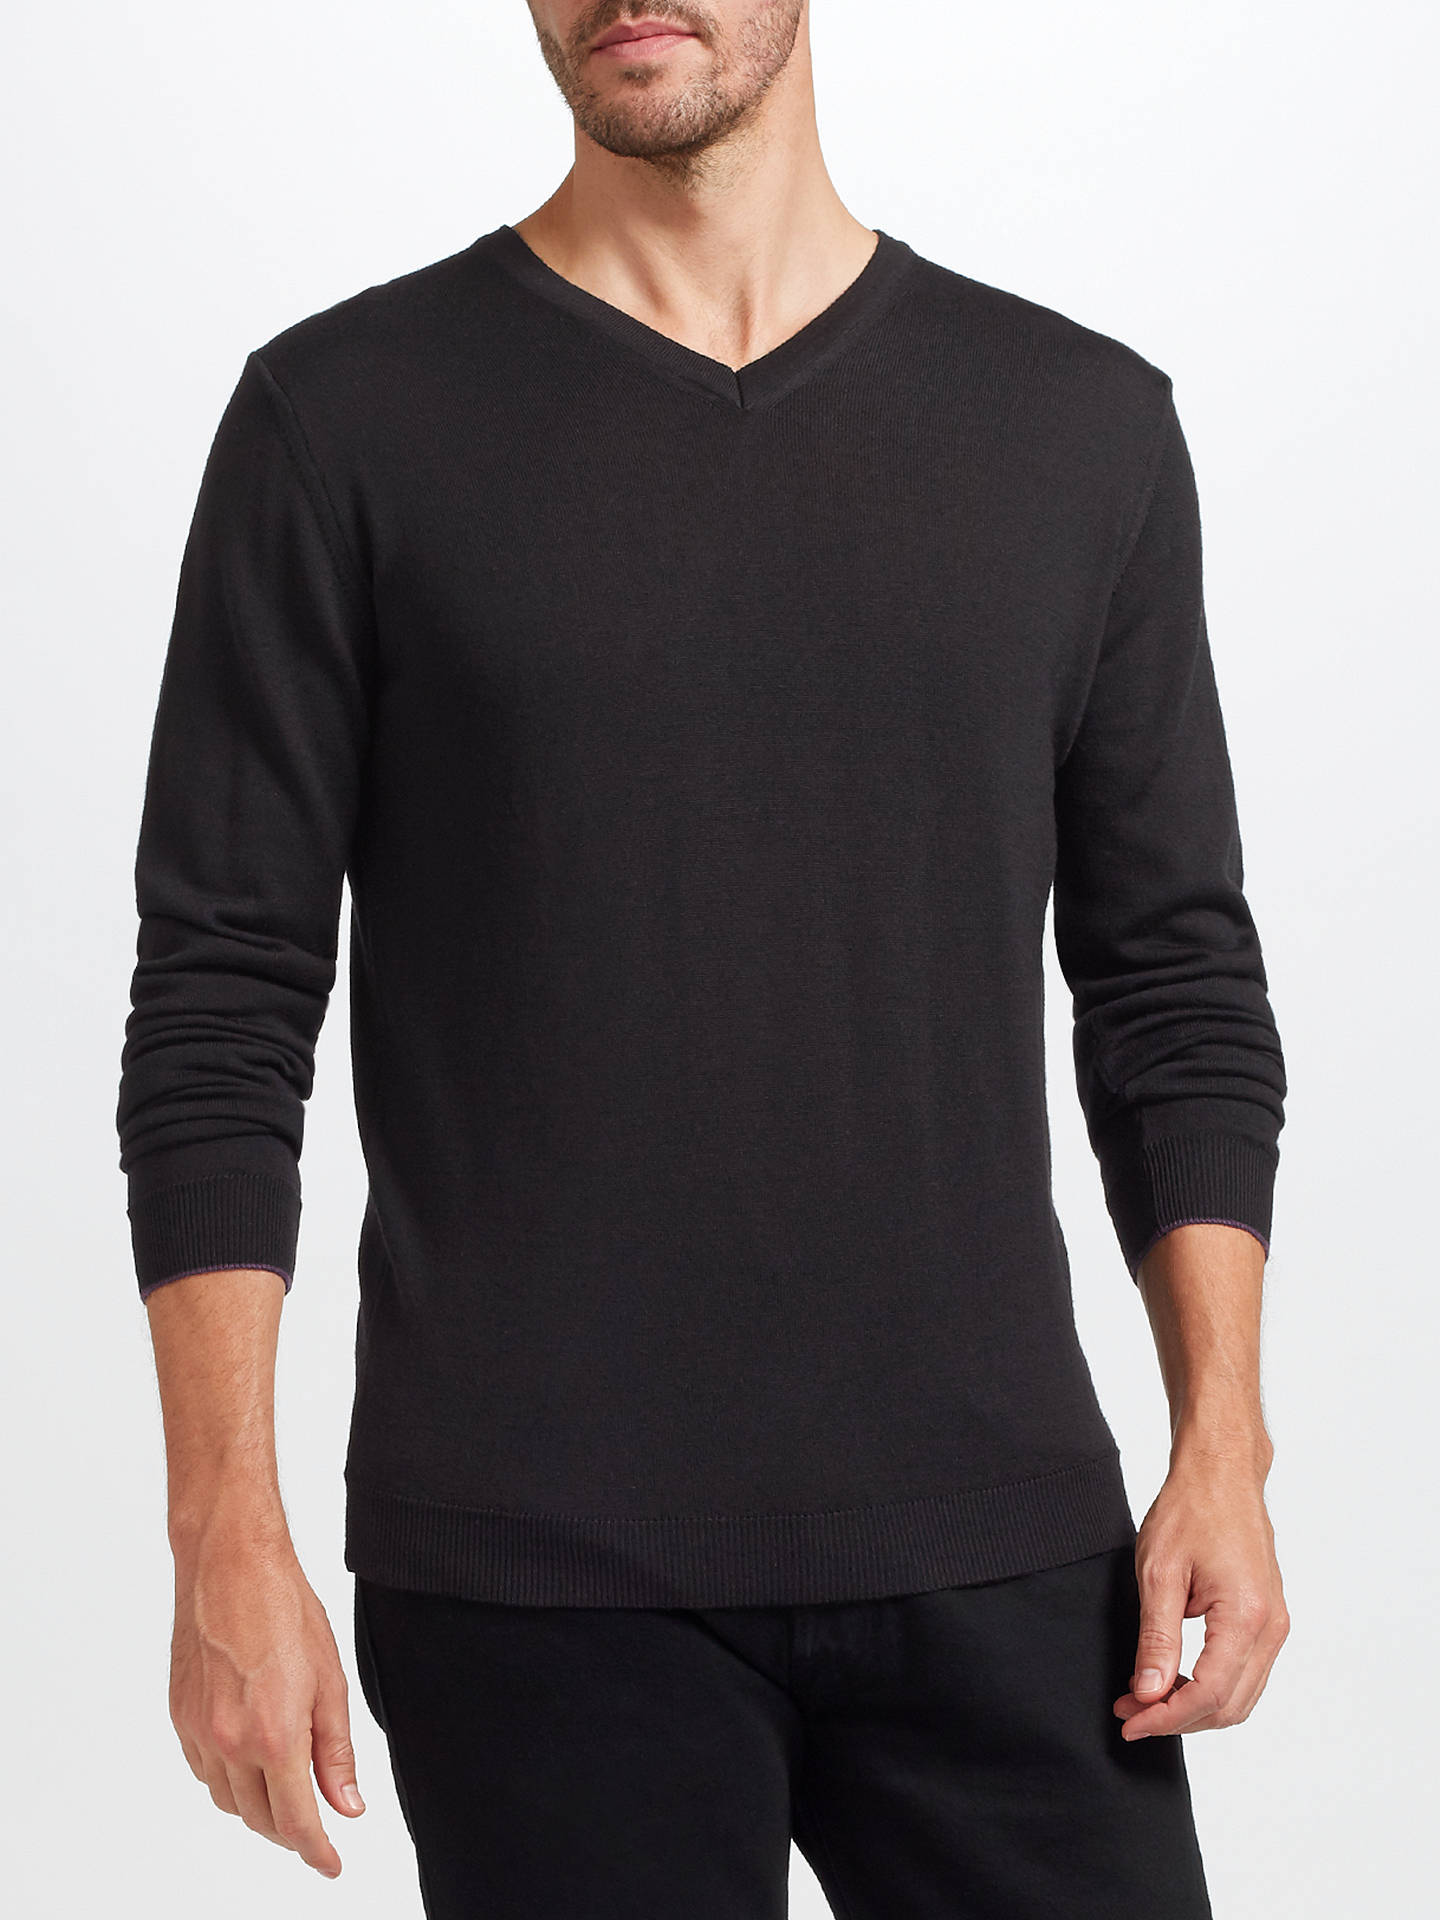 13b91af4bb3 John Lewis & Partners Made in Italy Merino Wool V-Neck Jumper at ...